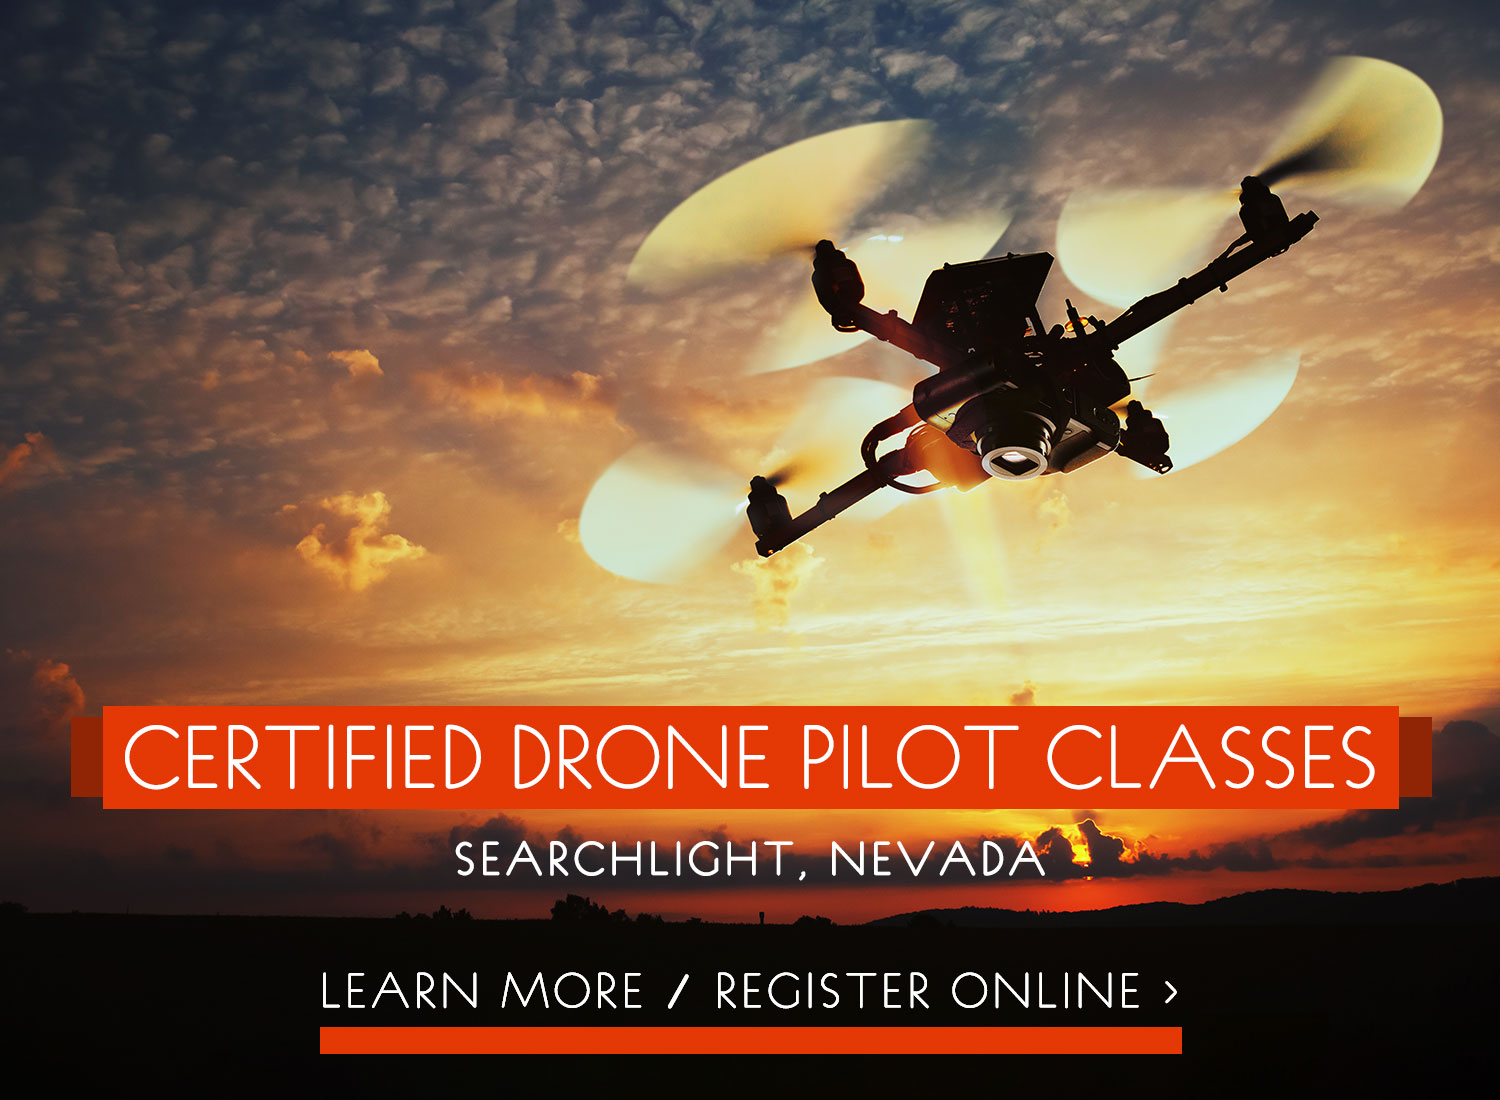 Certified Drone Pilot Classes - Searchlight, Nevada